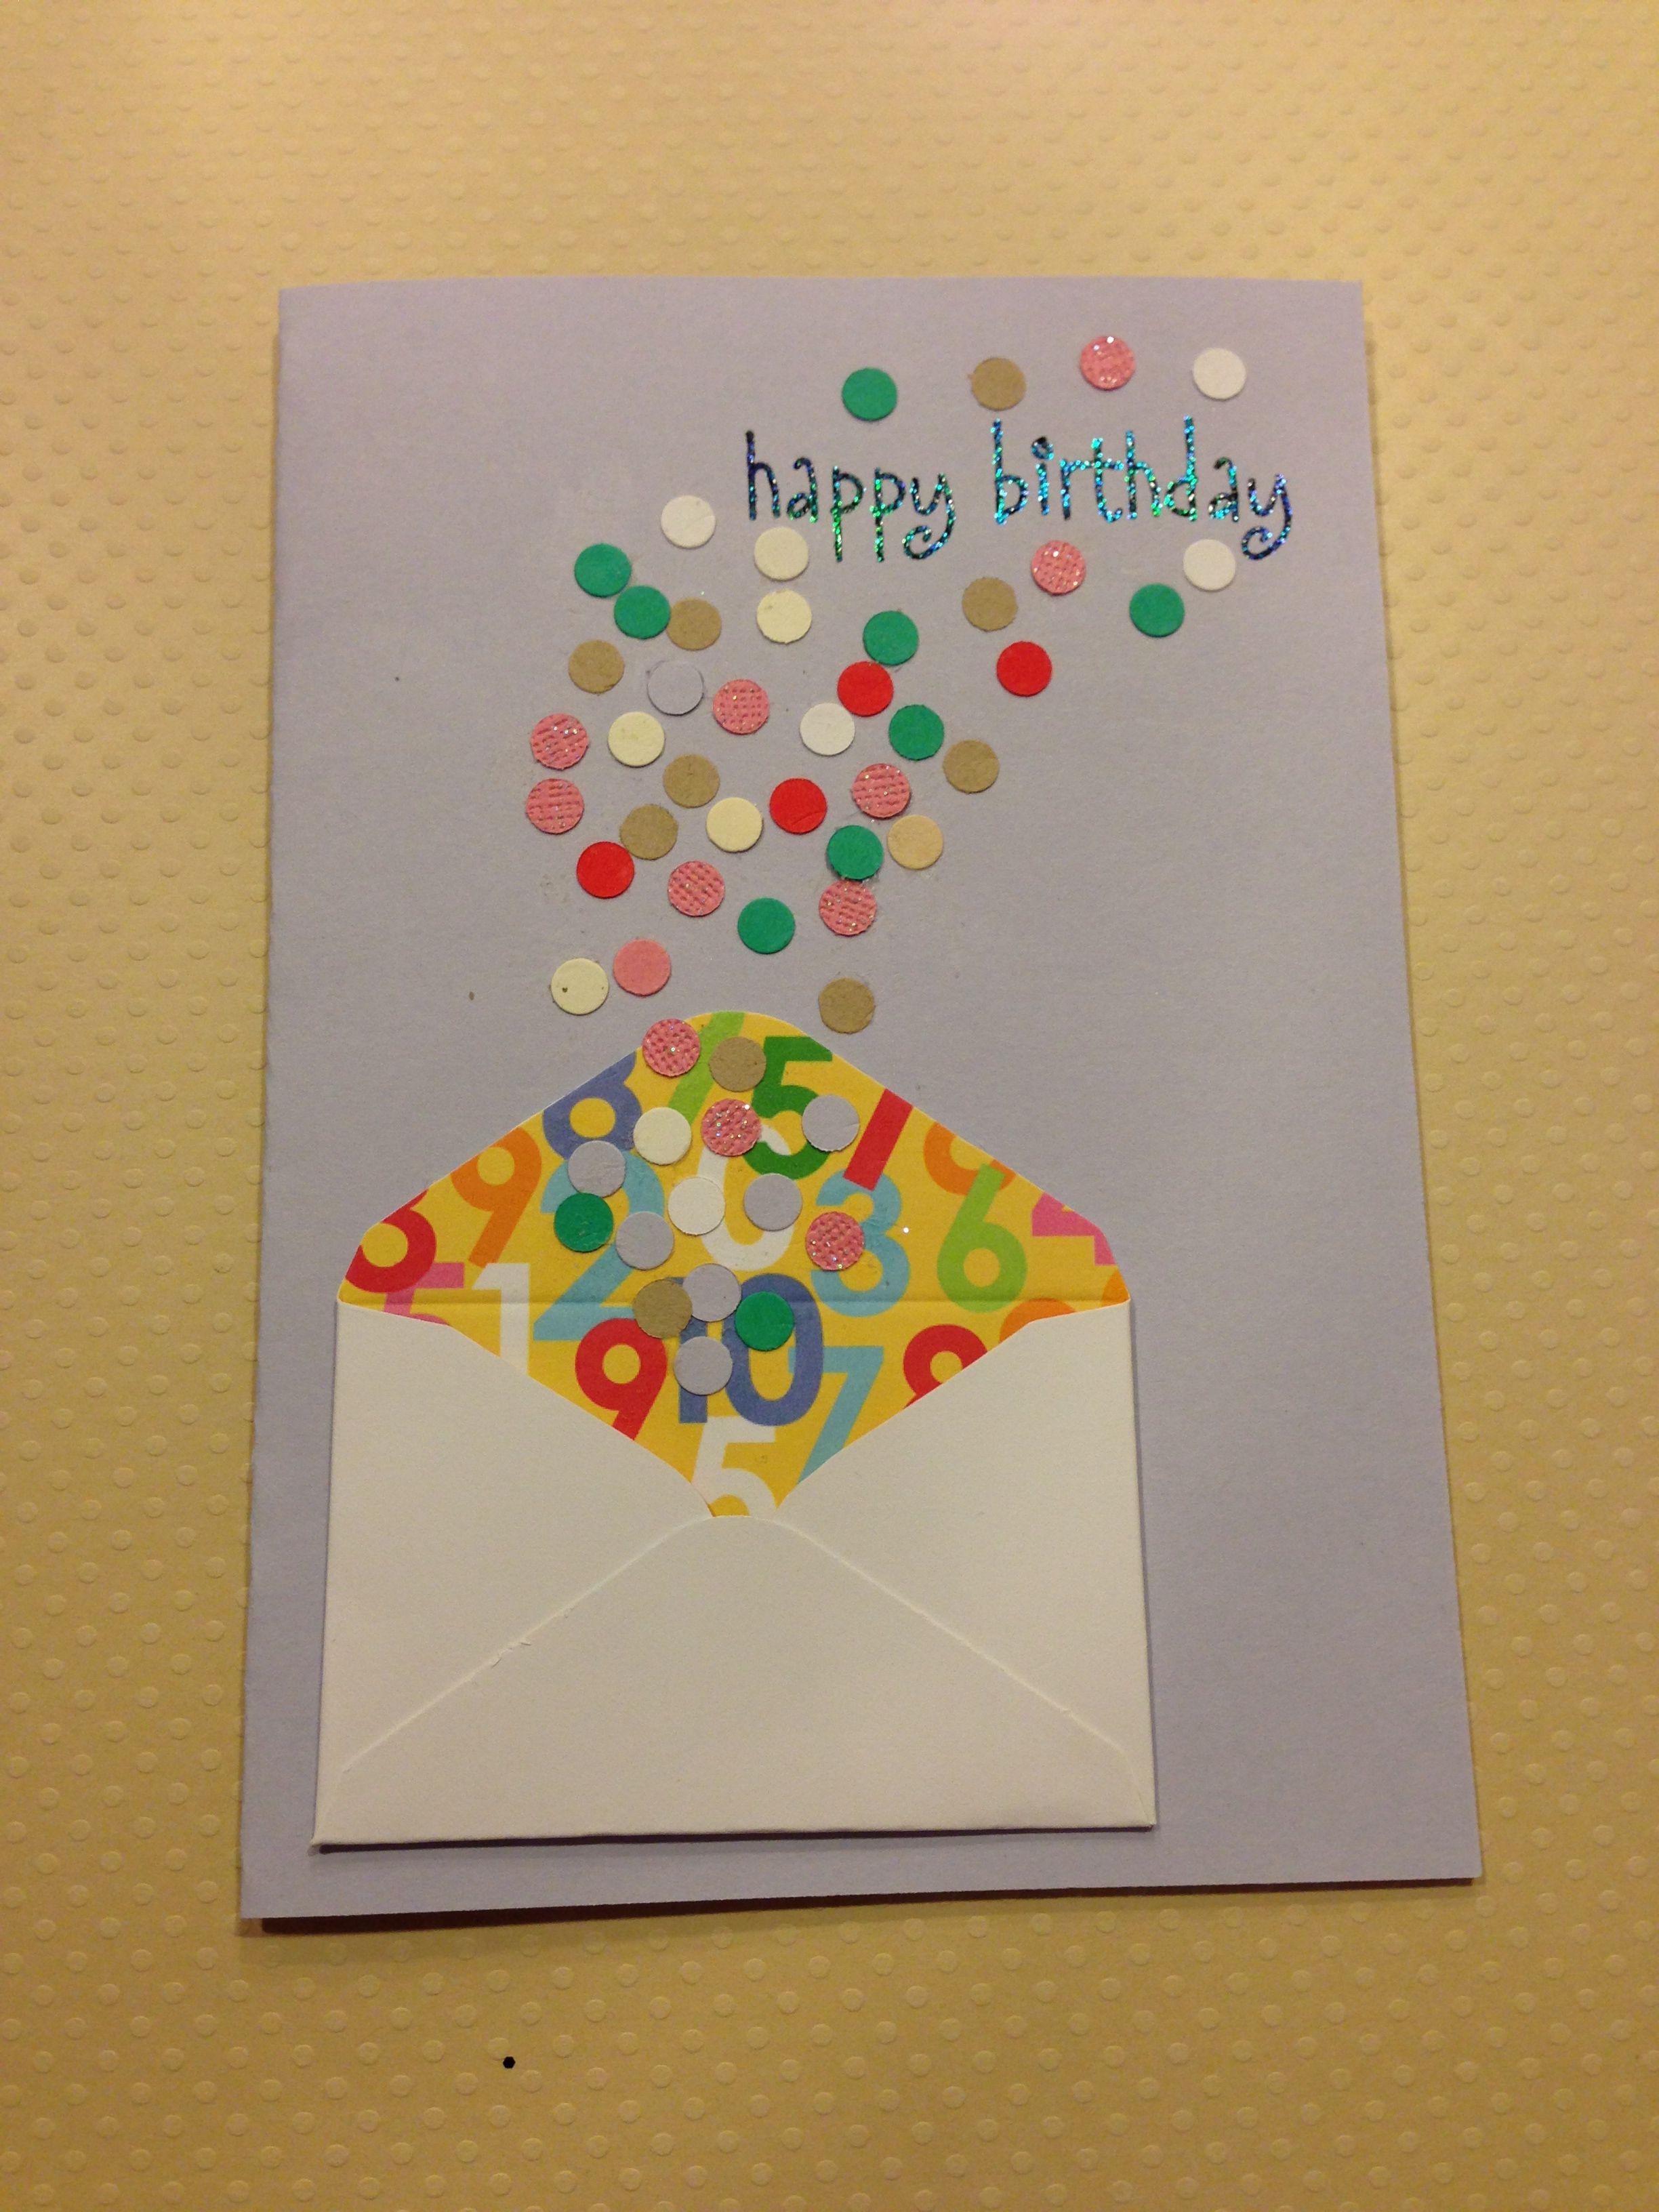 Birthday Card With Confetti Exploding Envelope Embellishment Could Work For Christmas With Snowflakes Carte Anniversaire Cartes De Voeux Carte